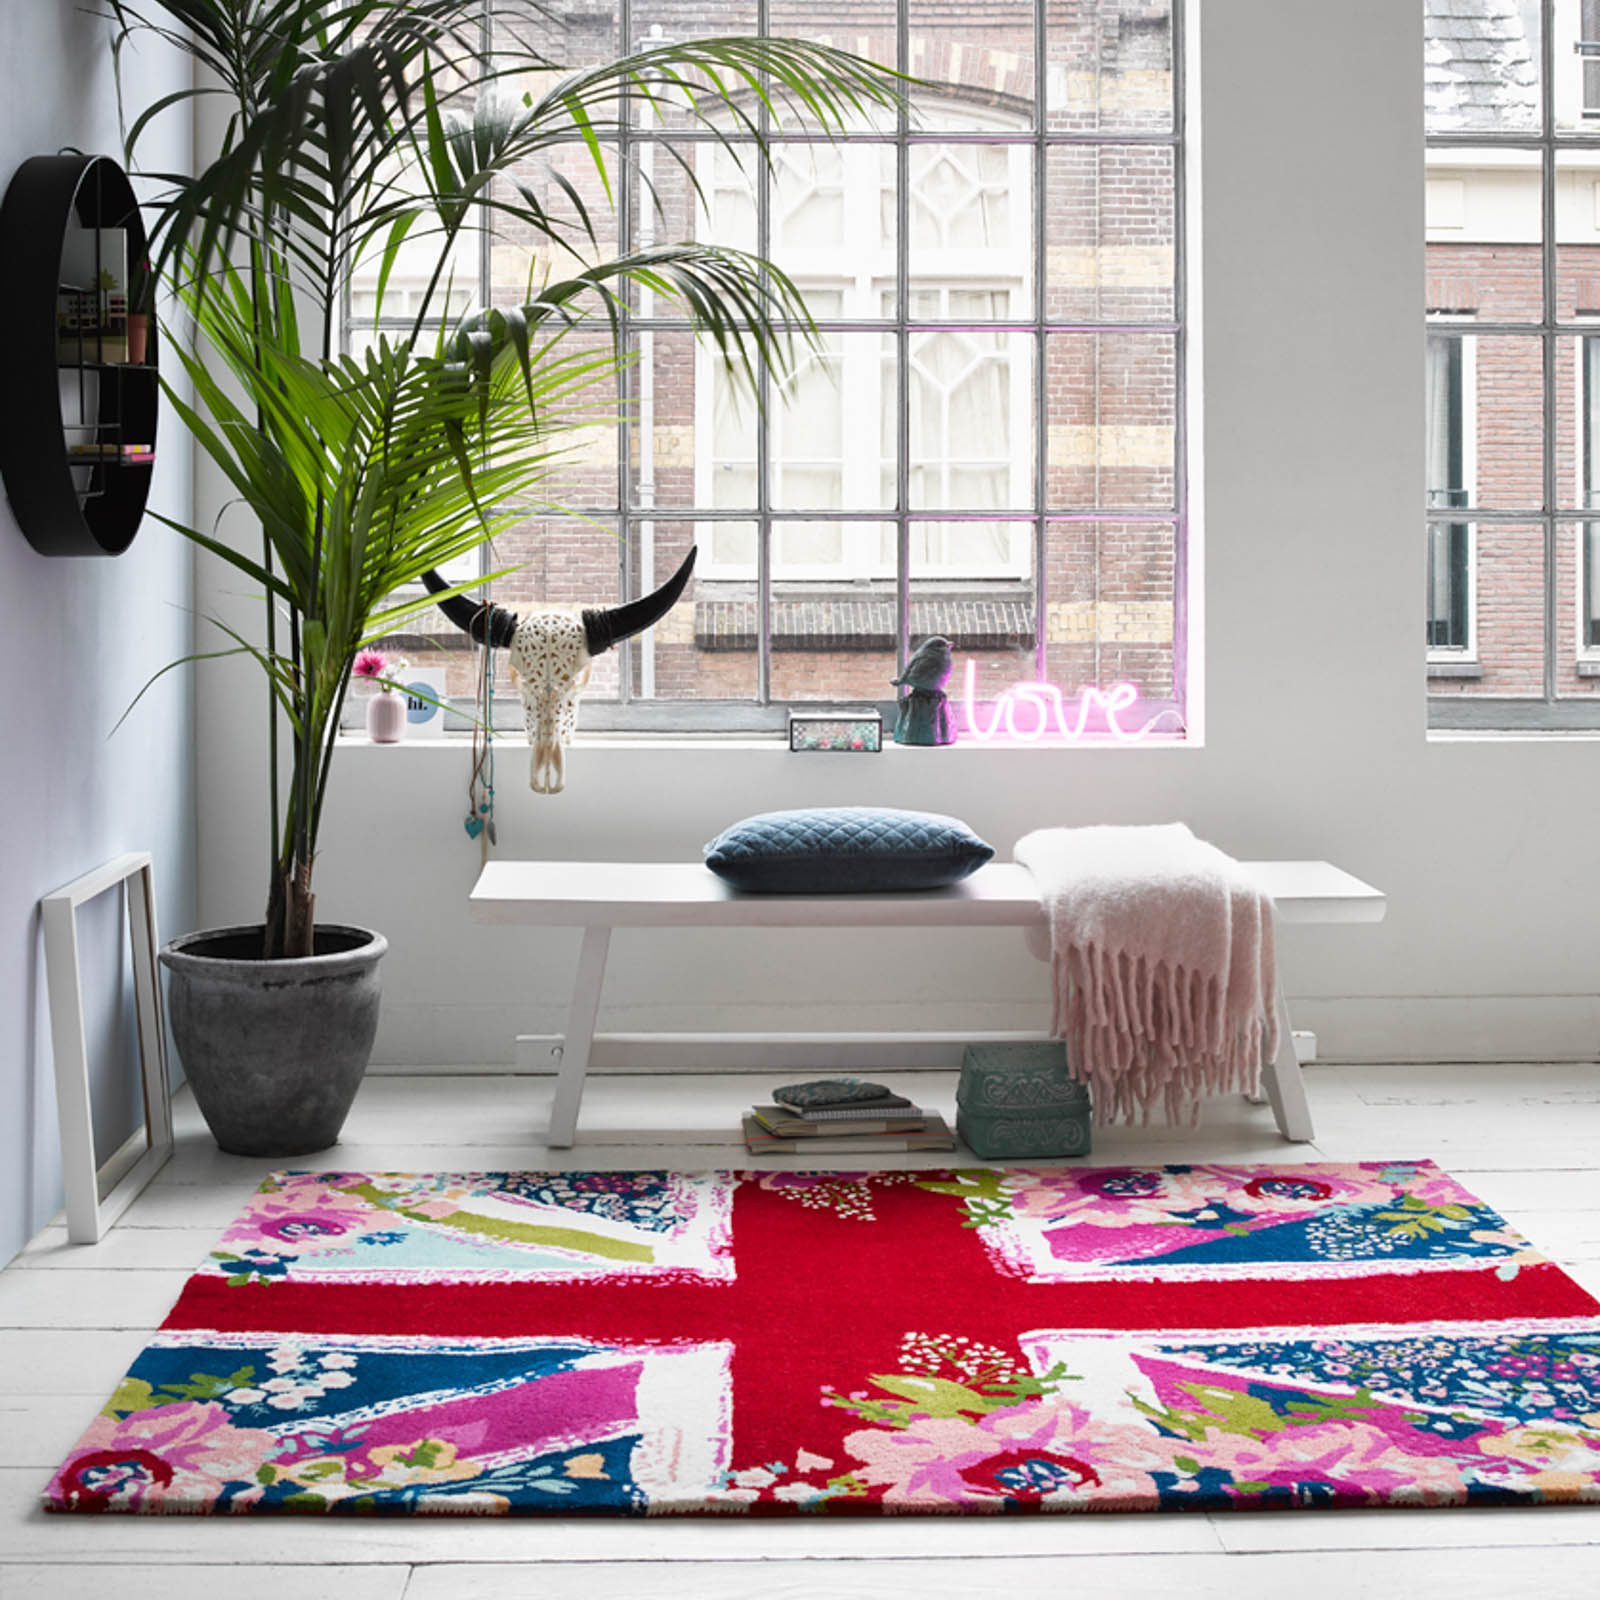 Bloom Kingdom rugs 010 11 by Accessorize Home